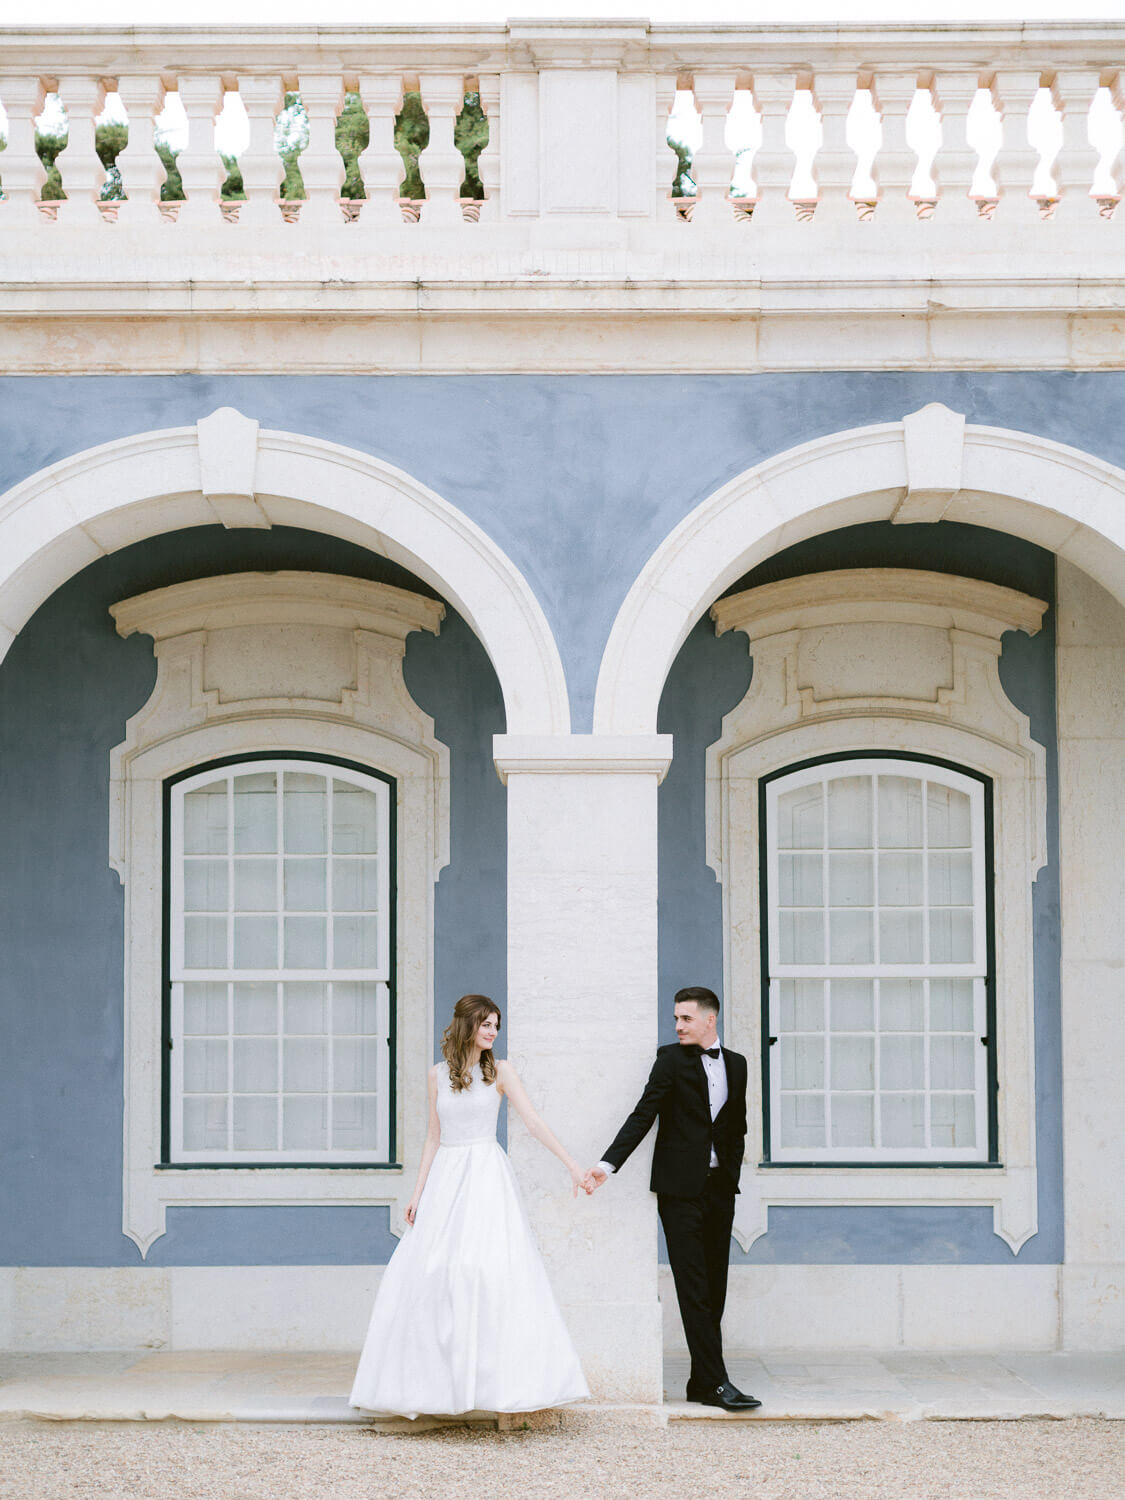 Gorgeous bride and groom portrait in front of beautiful Palacio de Queluz by Portugal Wedding Photographer